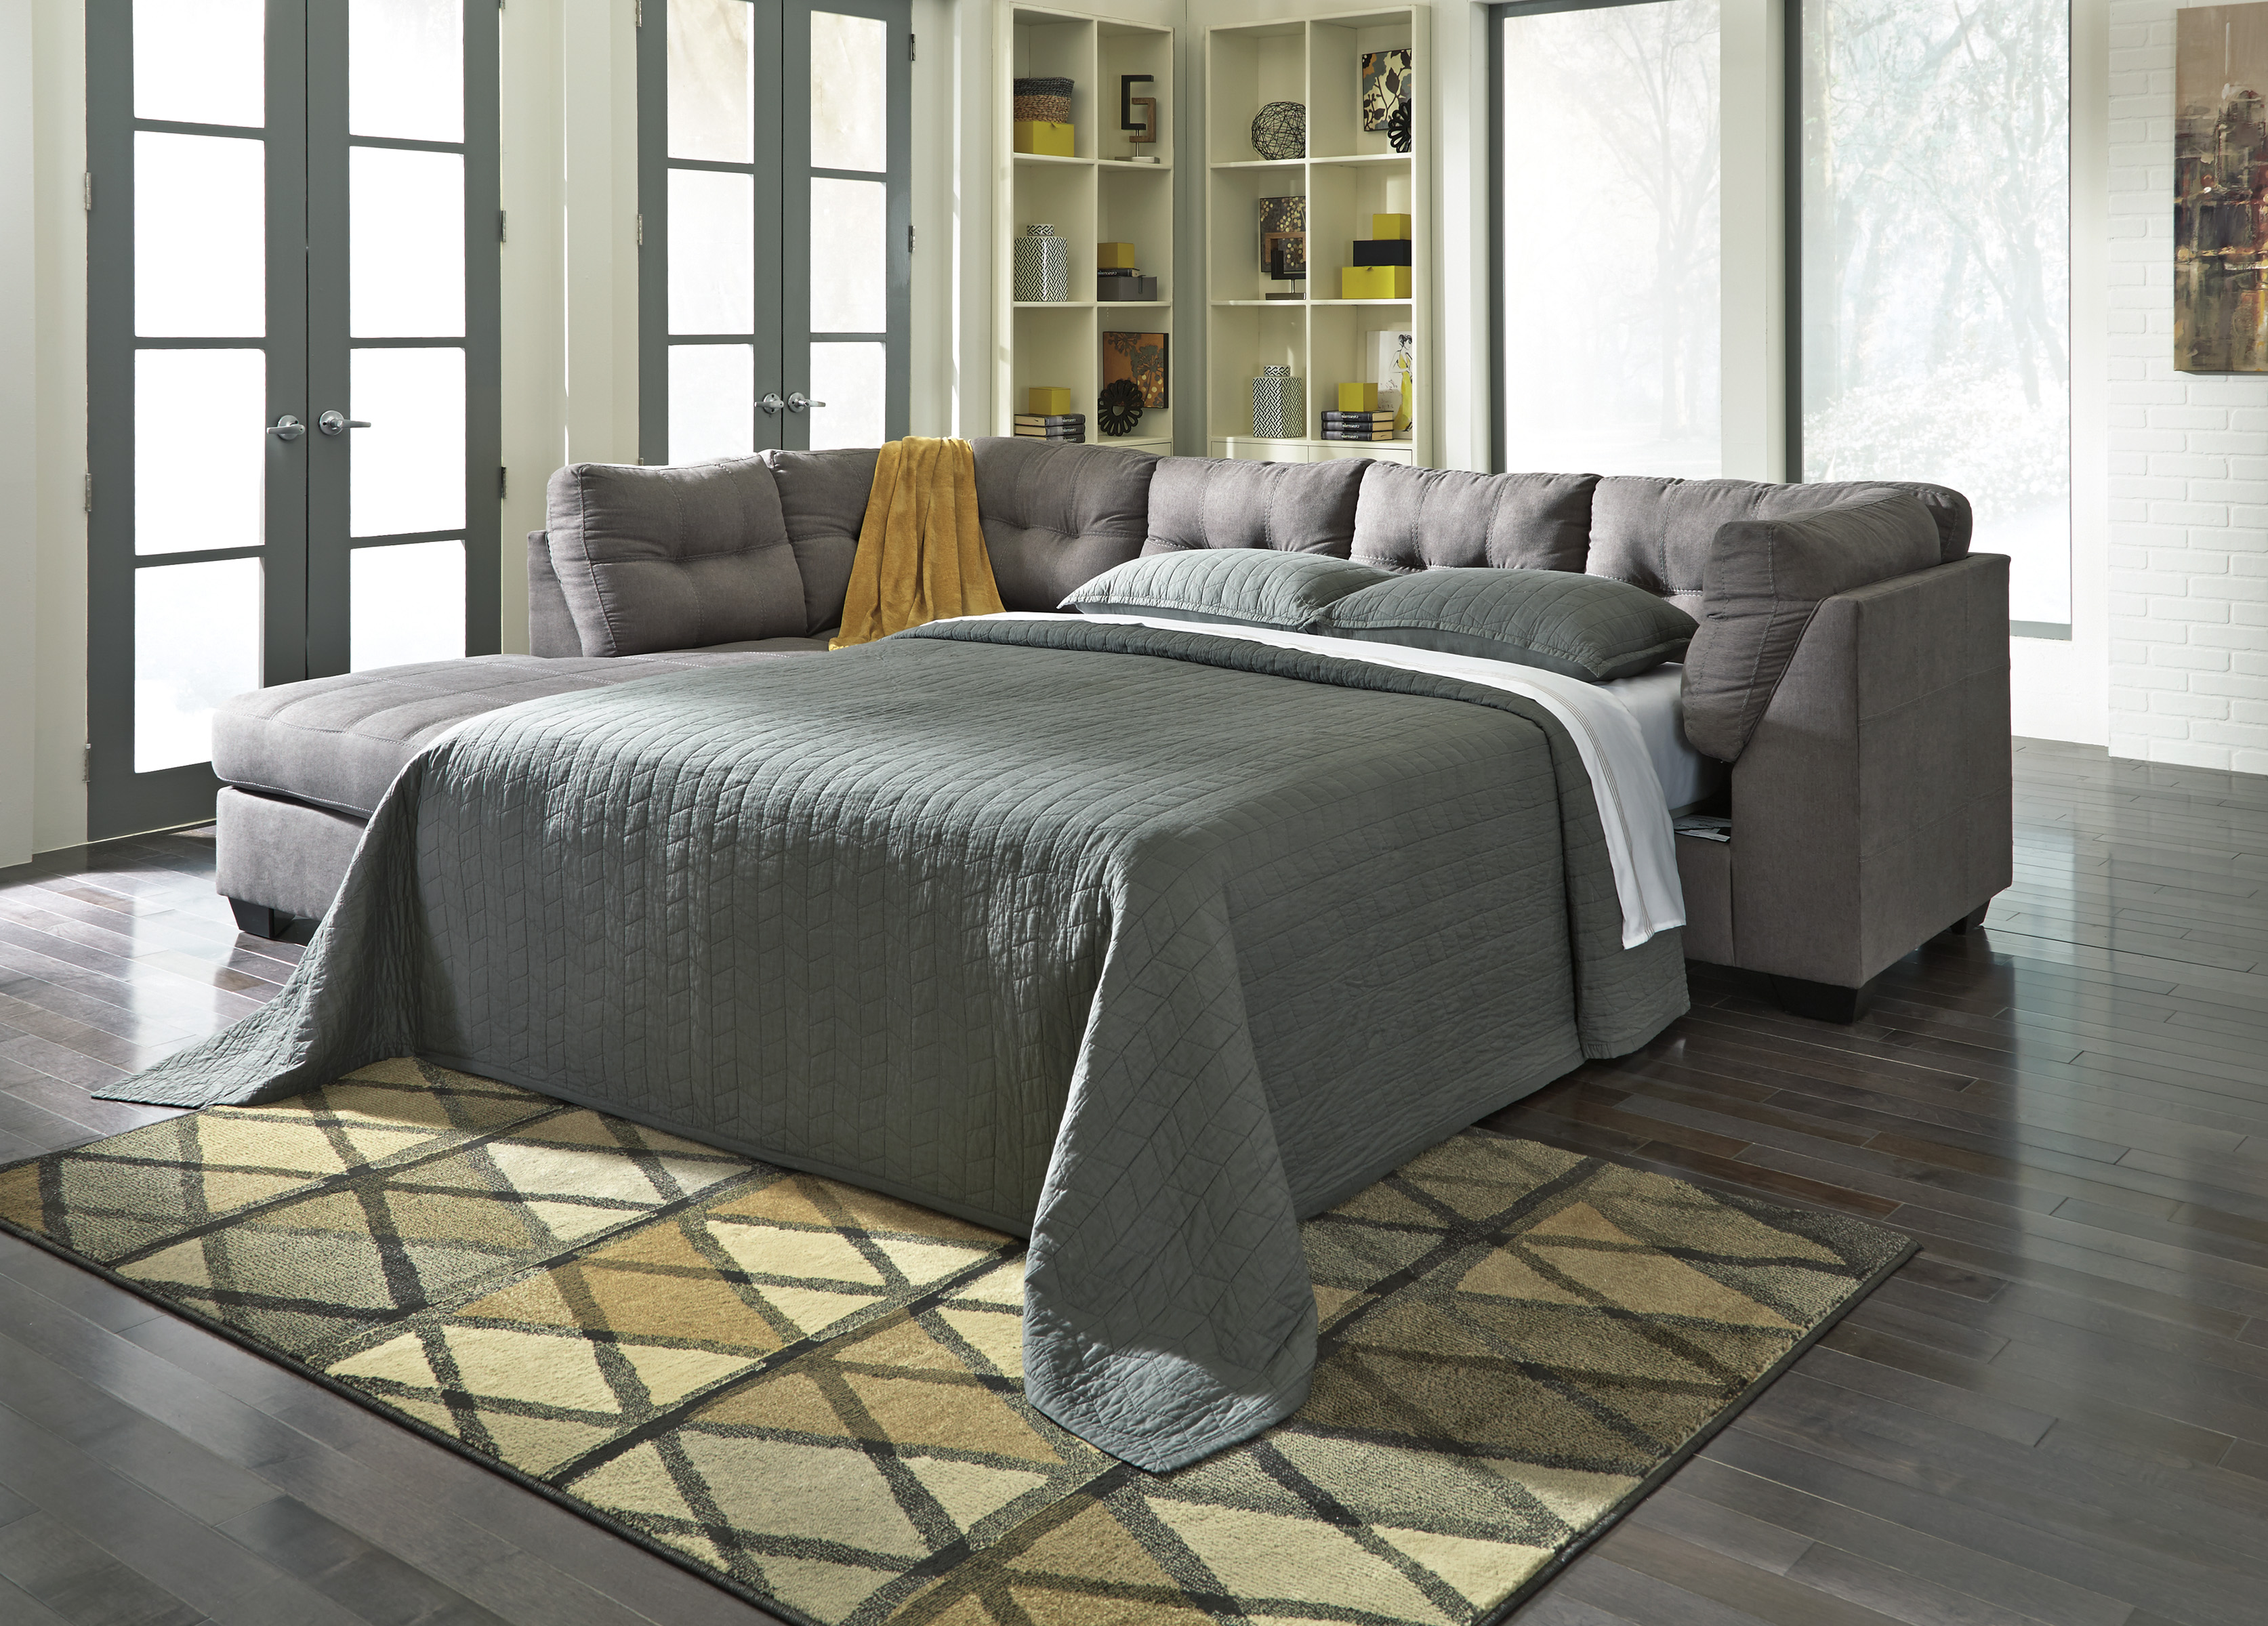 Furniture Rug Fancy Sectional Sleeper Sofa For Best Home